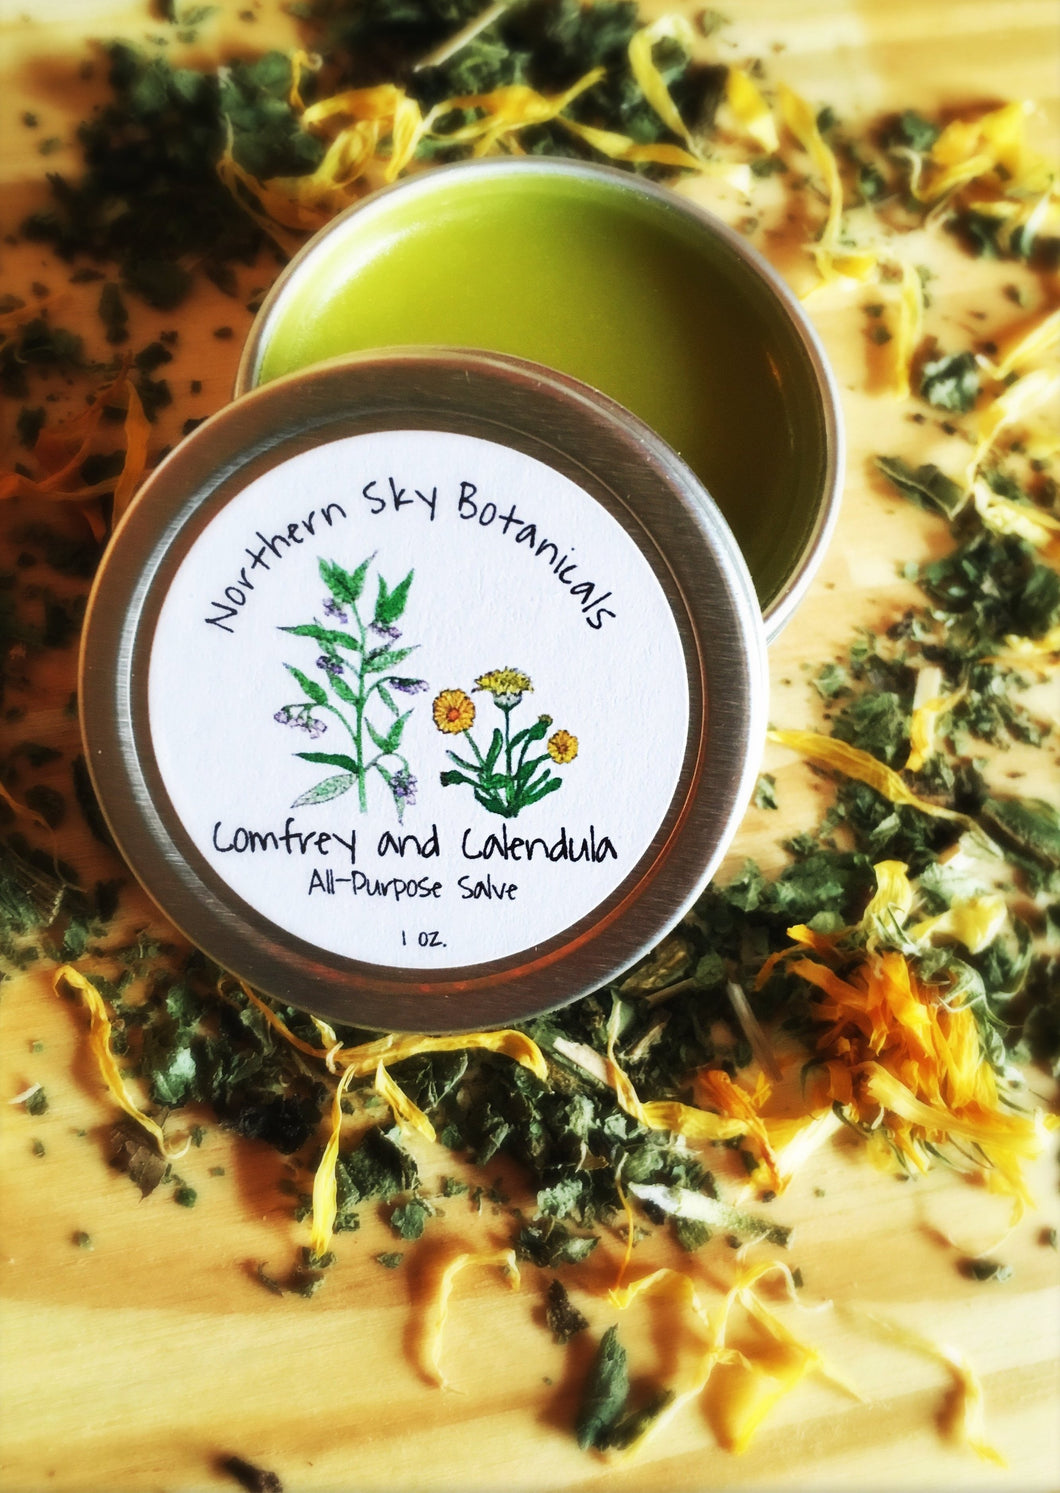 Comfrey and Calendula All-Purpose Salve